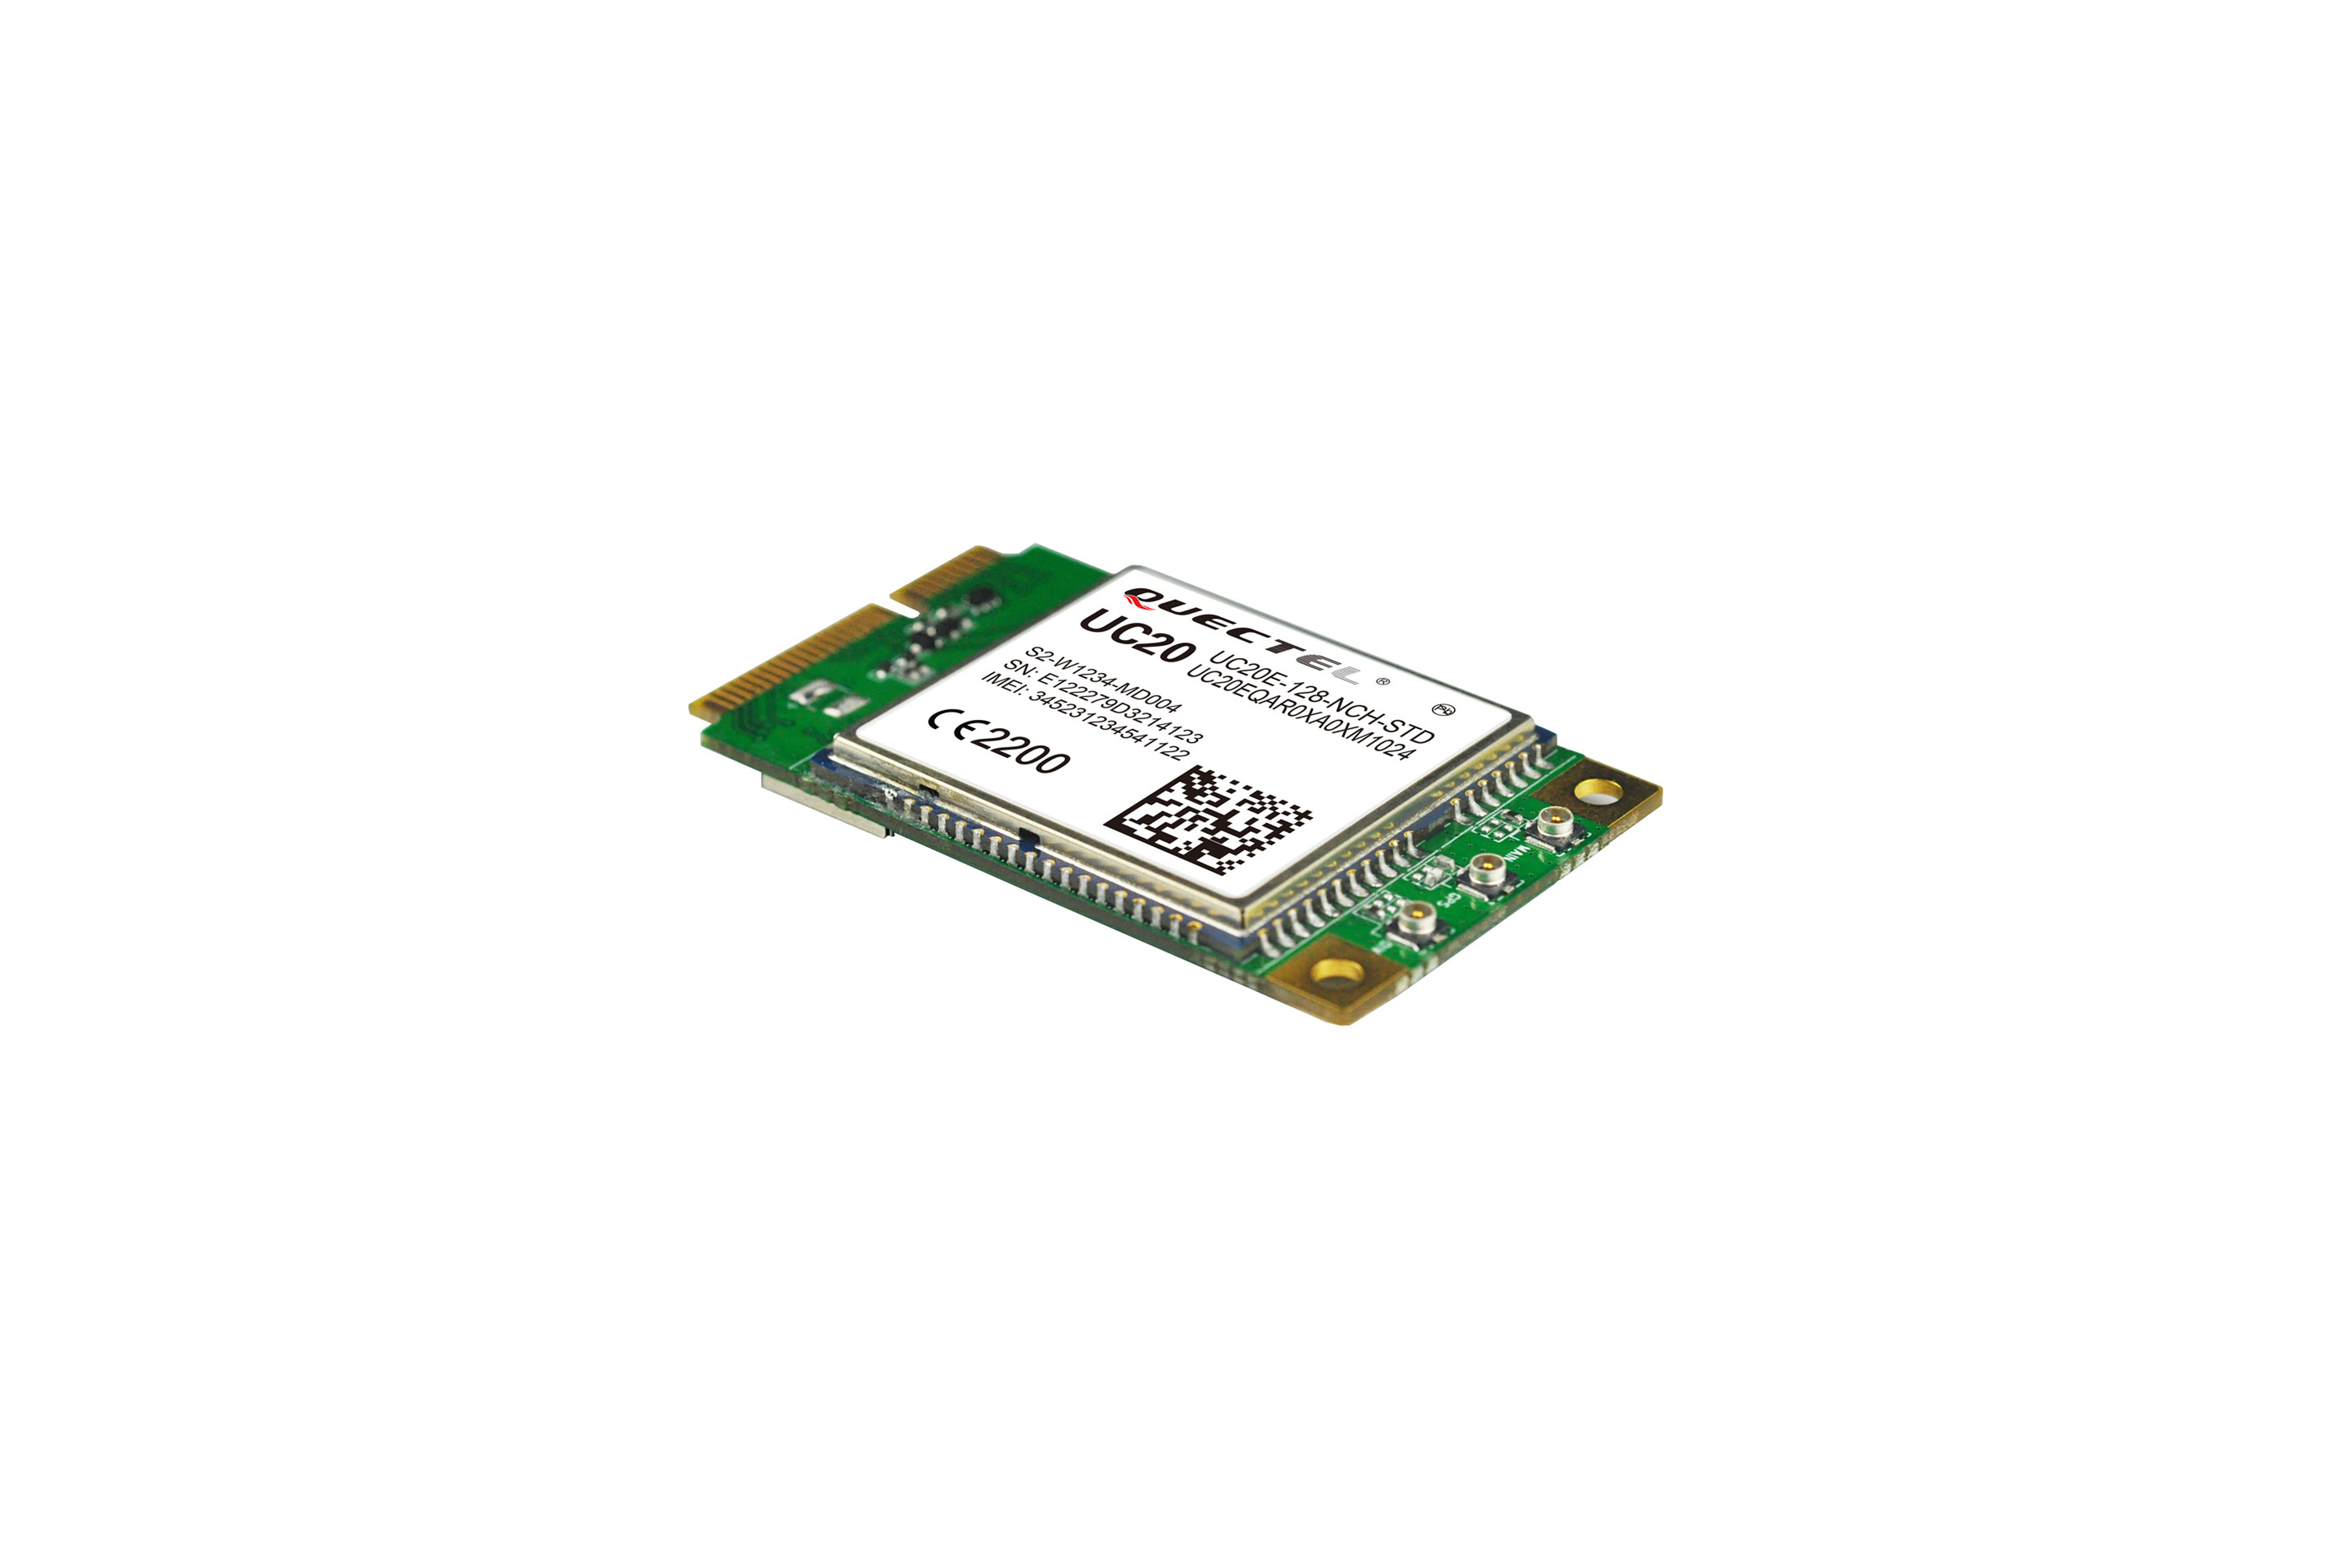 Carte MiniPCIe EC20 - 4G LTE Europe uniquement